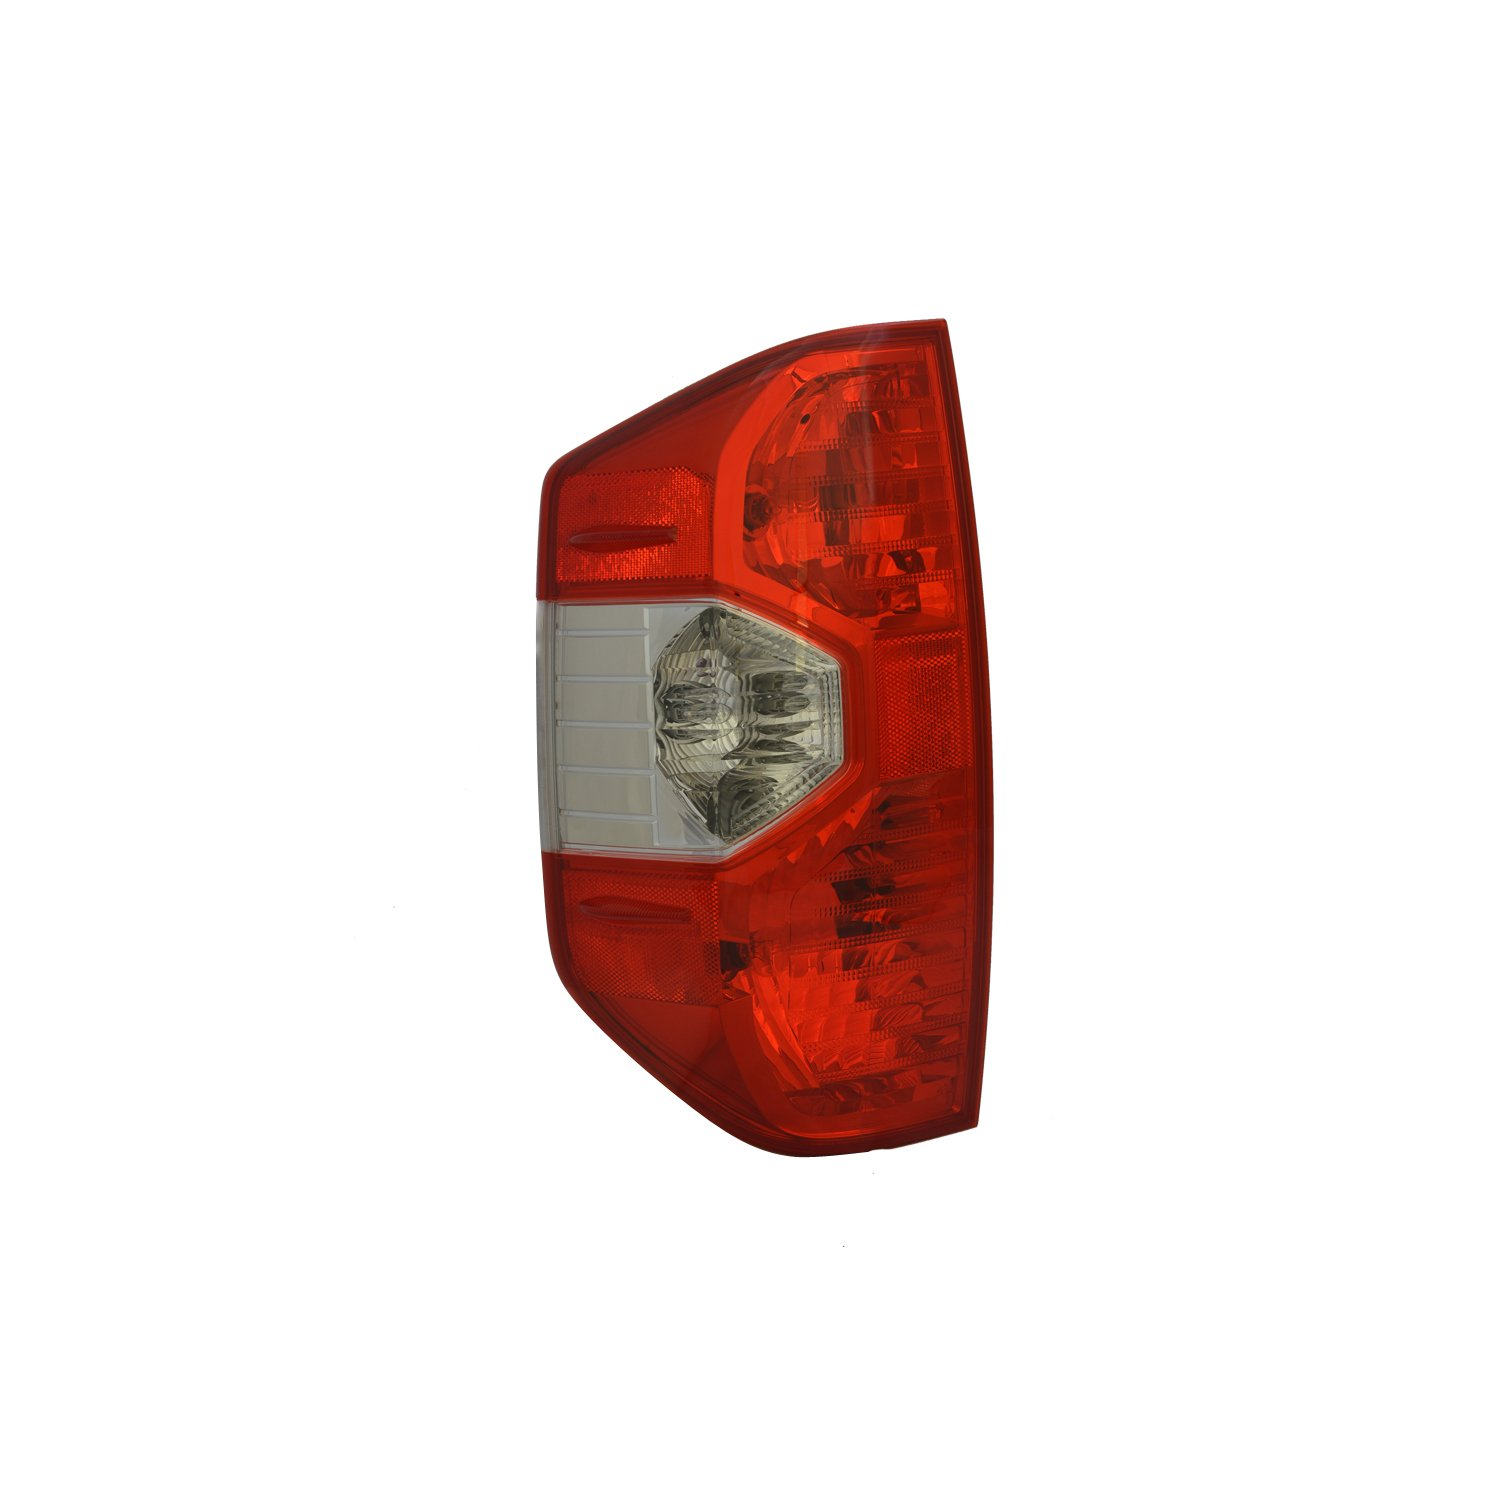 Best Rated In Automotive Brake Tail Light Assemblies Helpful Led Wiring Diagram Additionally Toyota Ta A Tyc 11 6642 00 1 Replacement Left Lamp Tundra